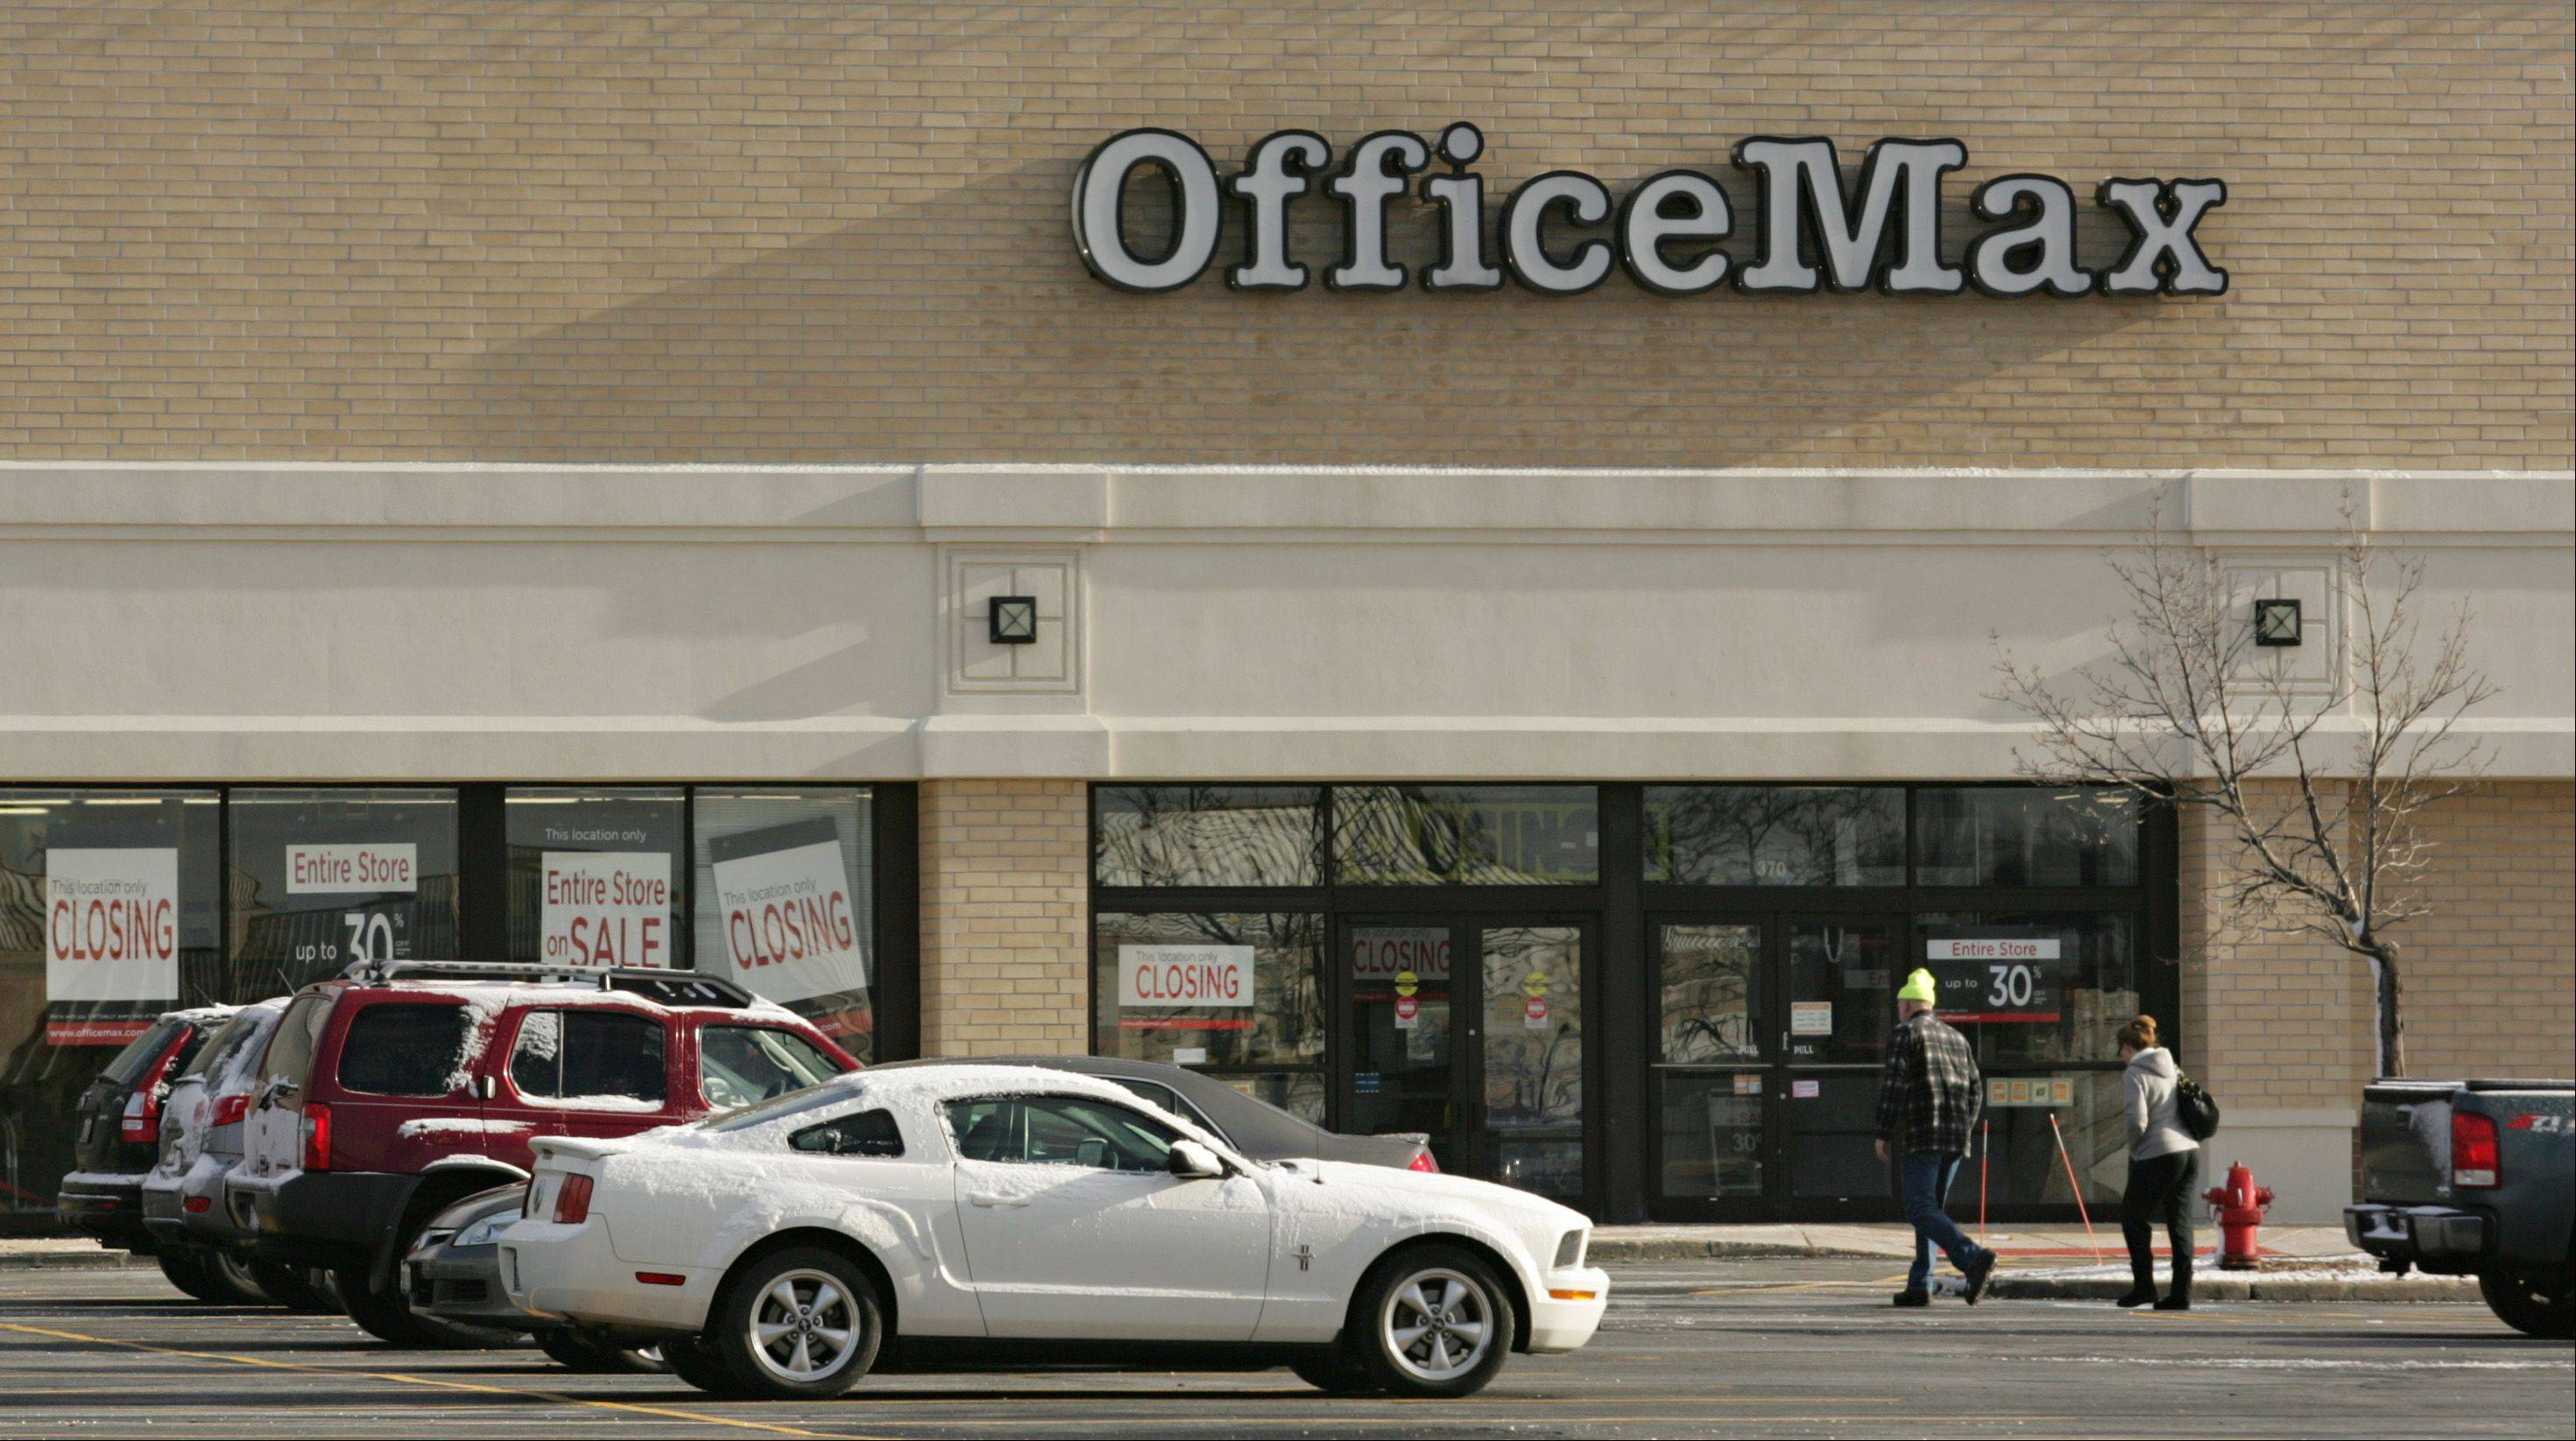 NEW YORK -- The Wall Street Journal is reporting that Naperville-based OfficeMax Inc. and Office Depot Inc. are talking about combining their companies.